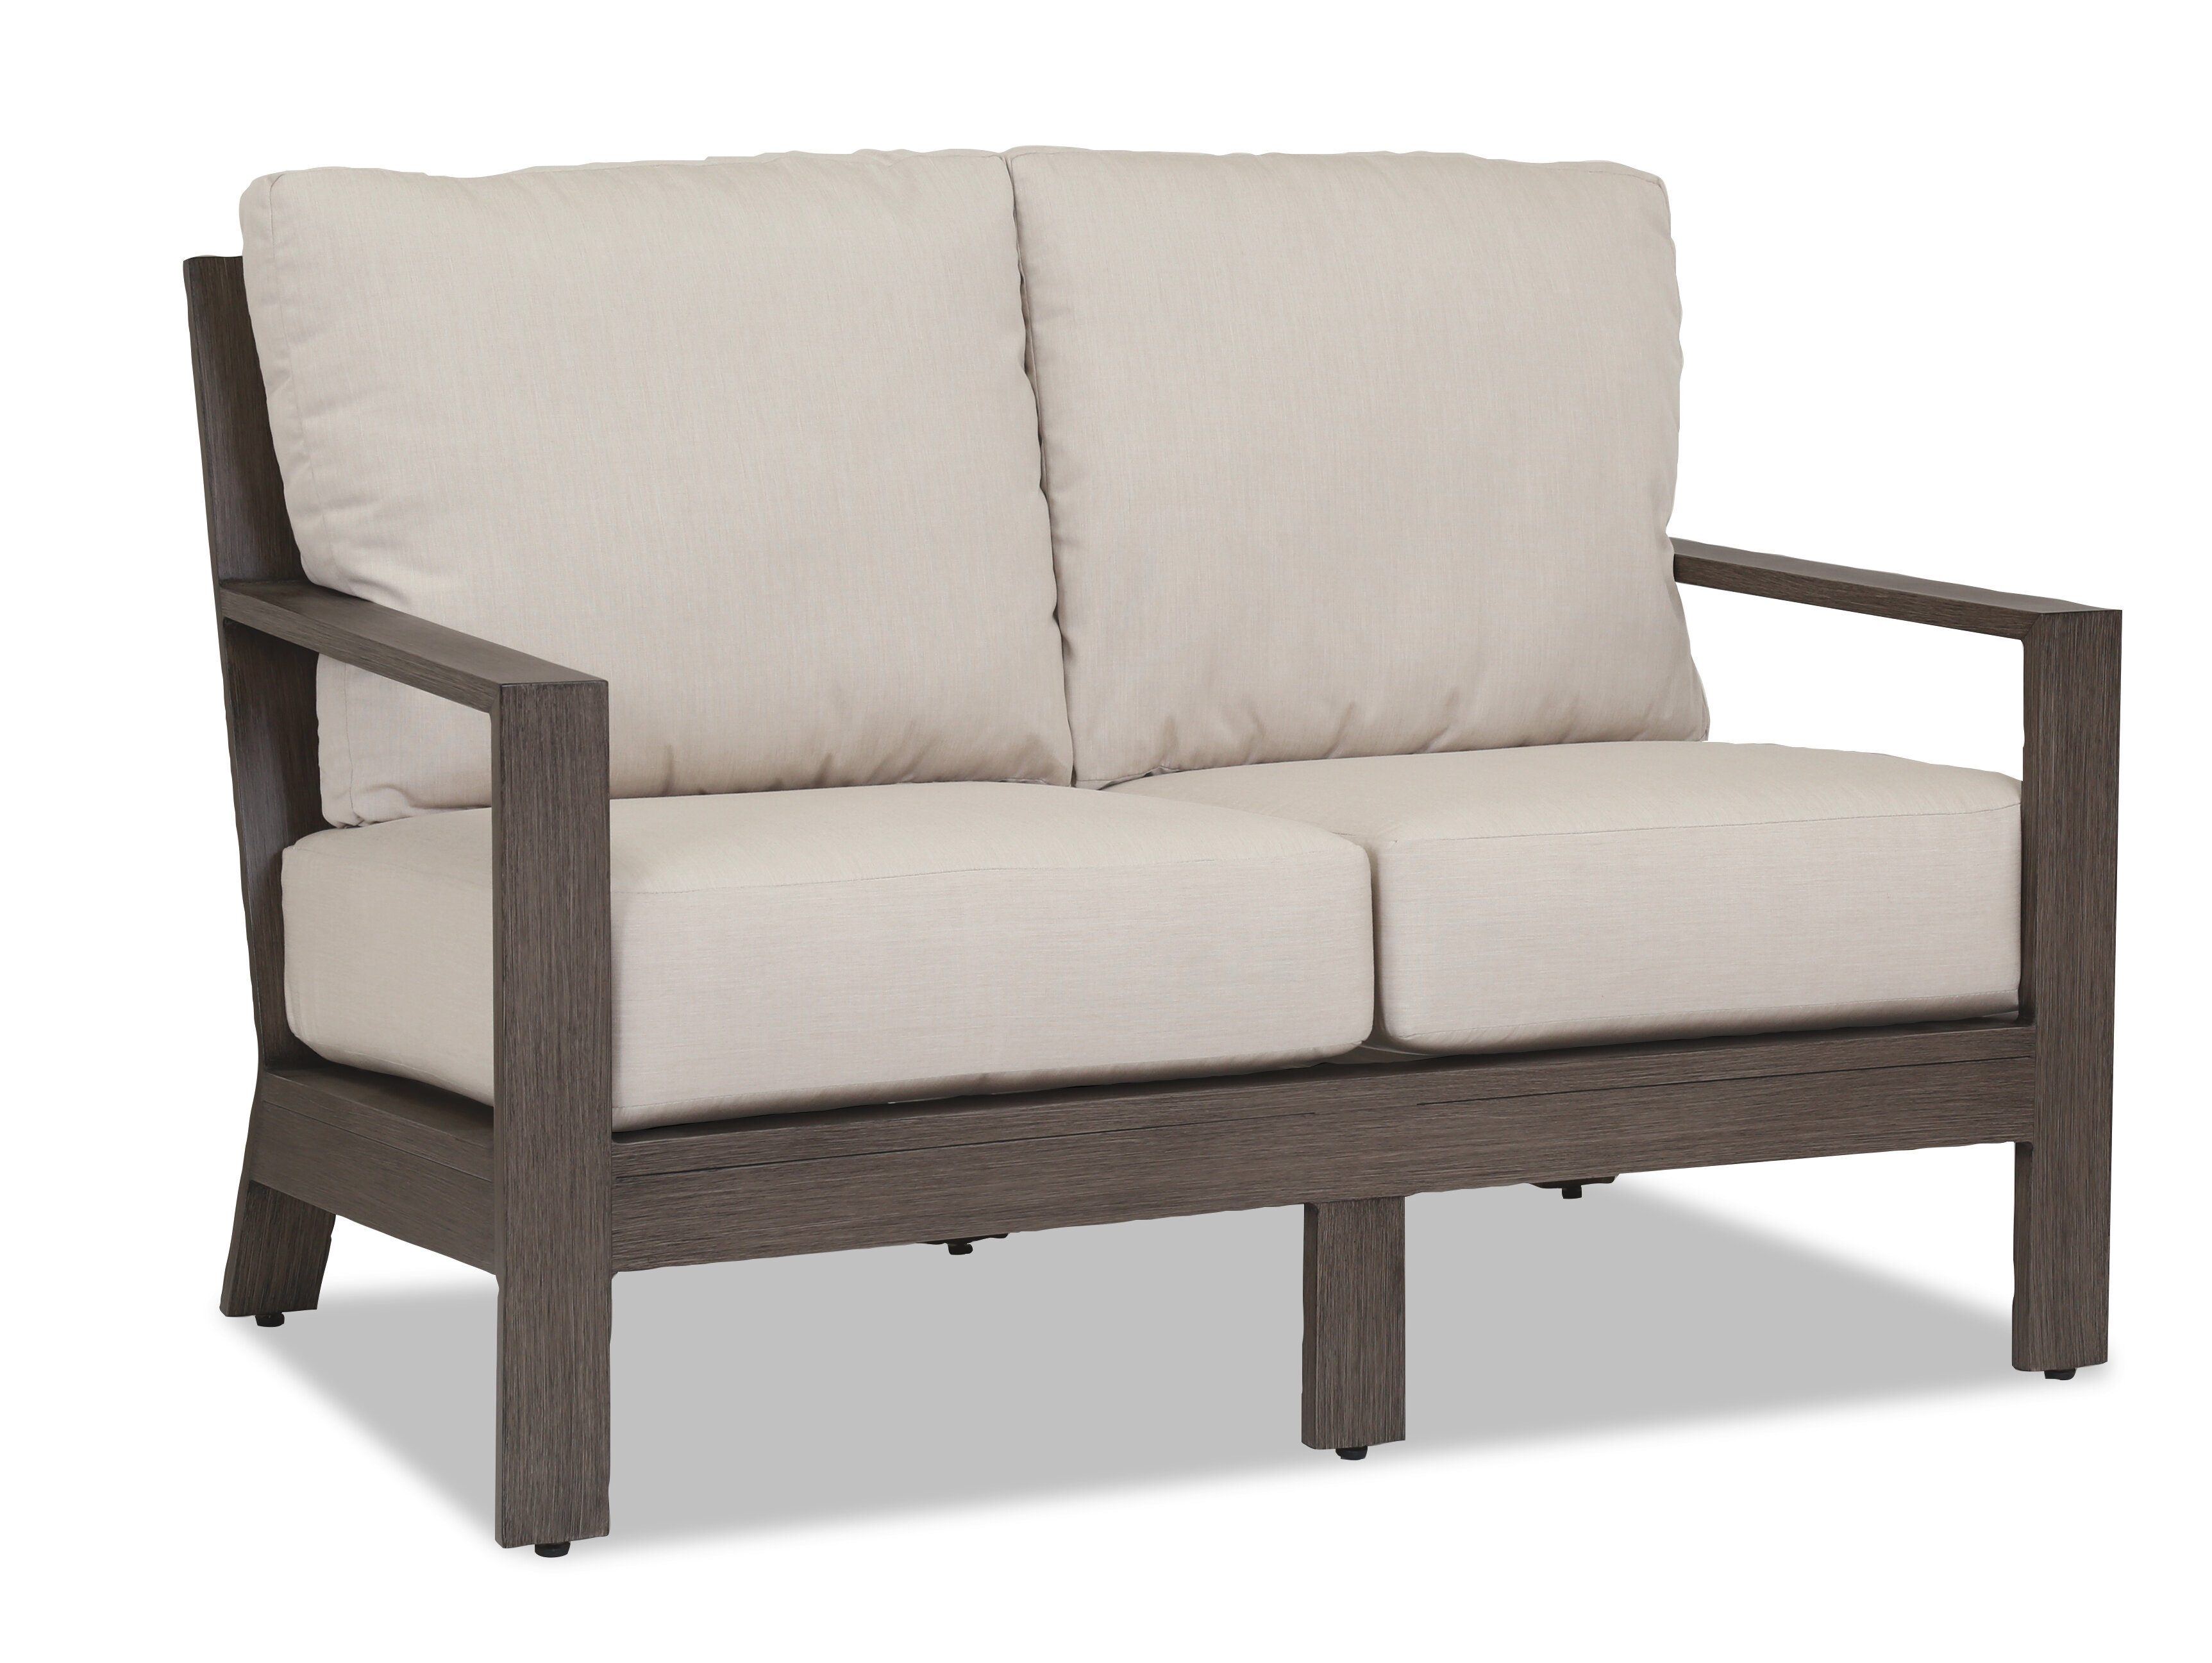 mcguire product vintage bamboo cathedral back loveseat sofa chairish